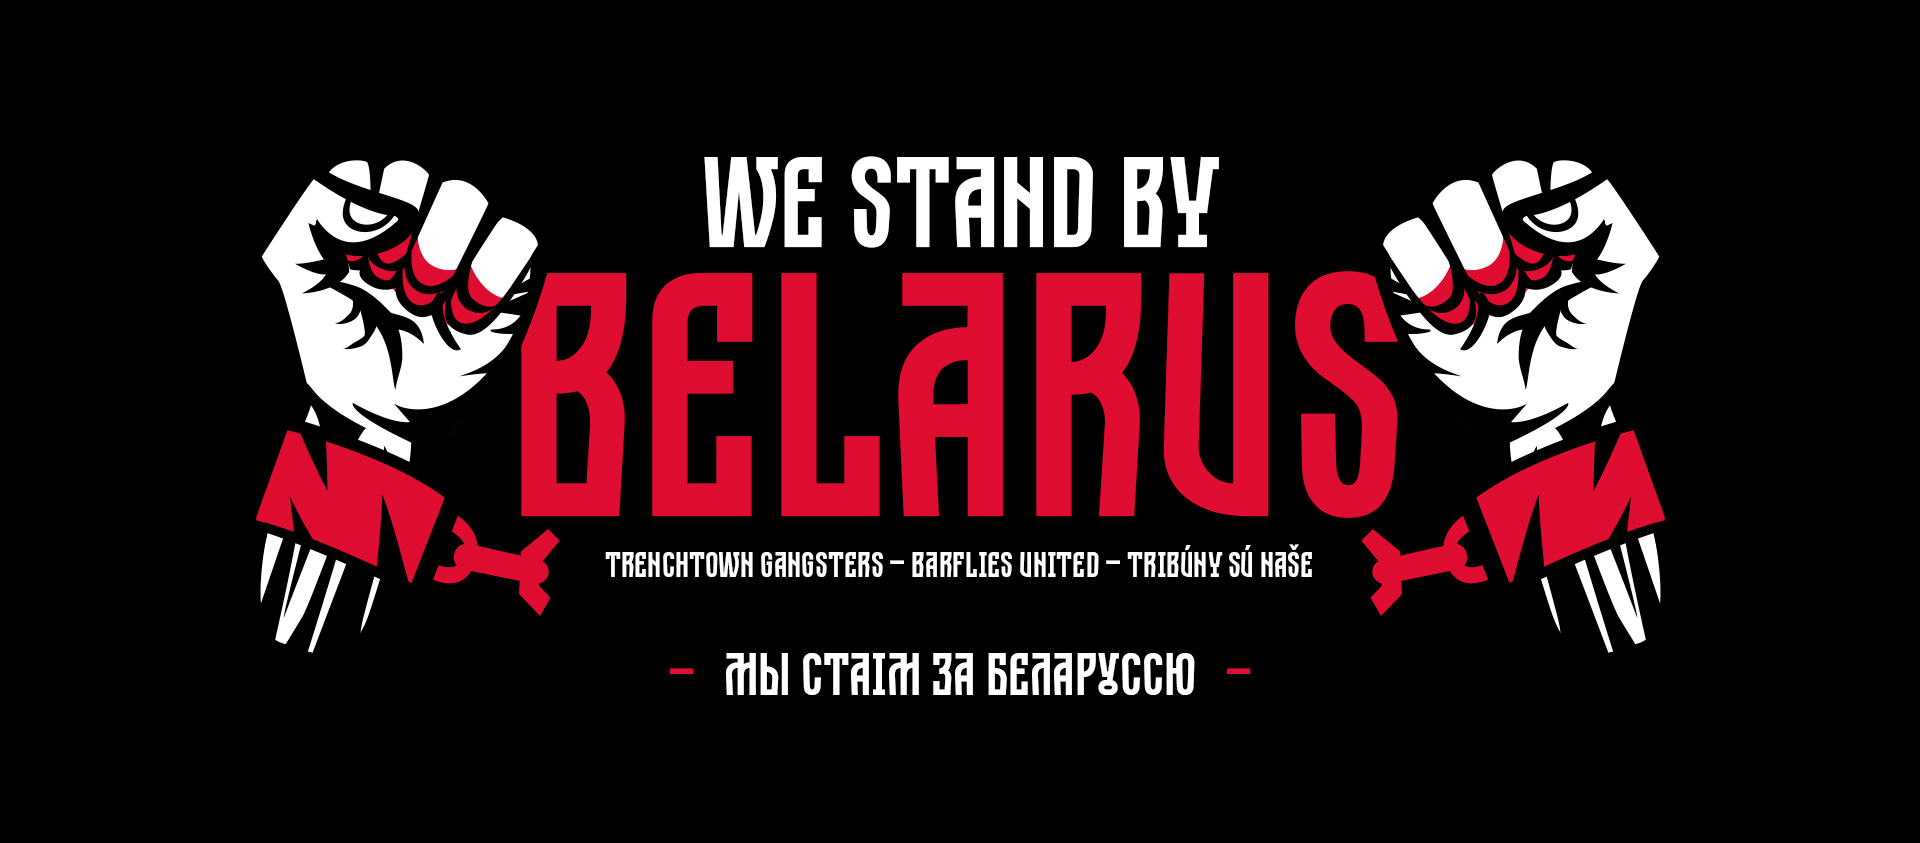 We stand by Belarus